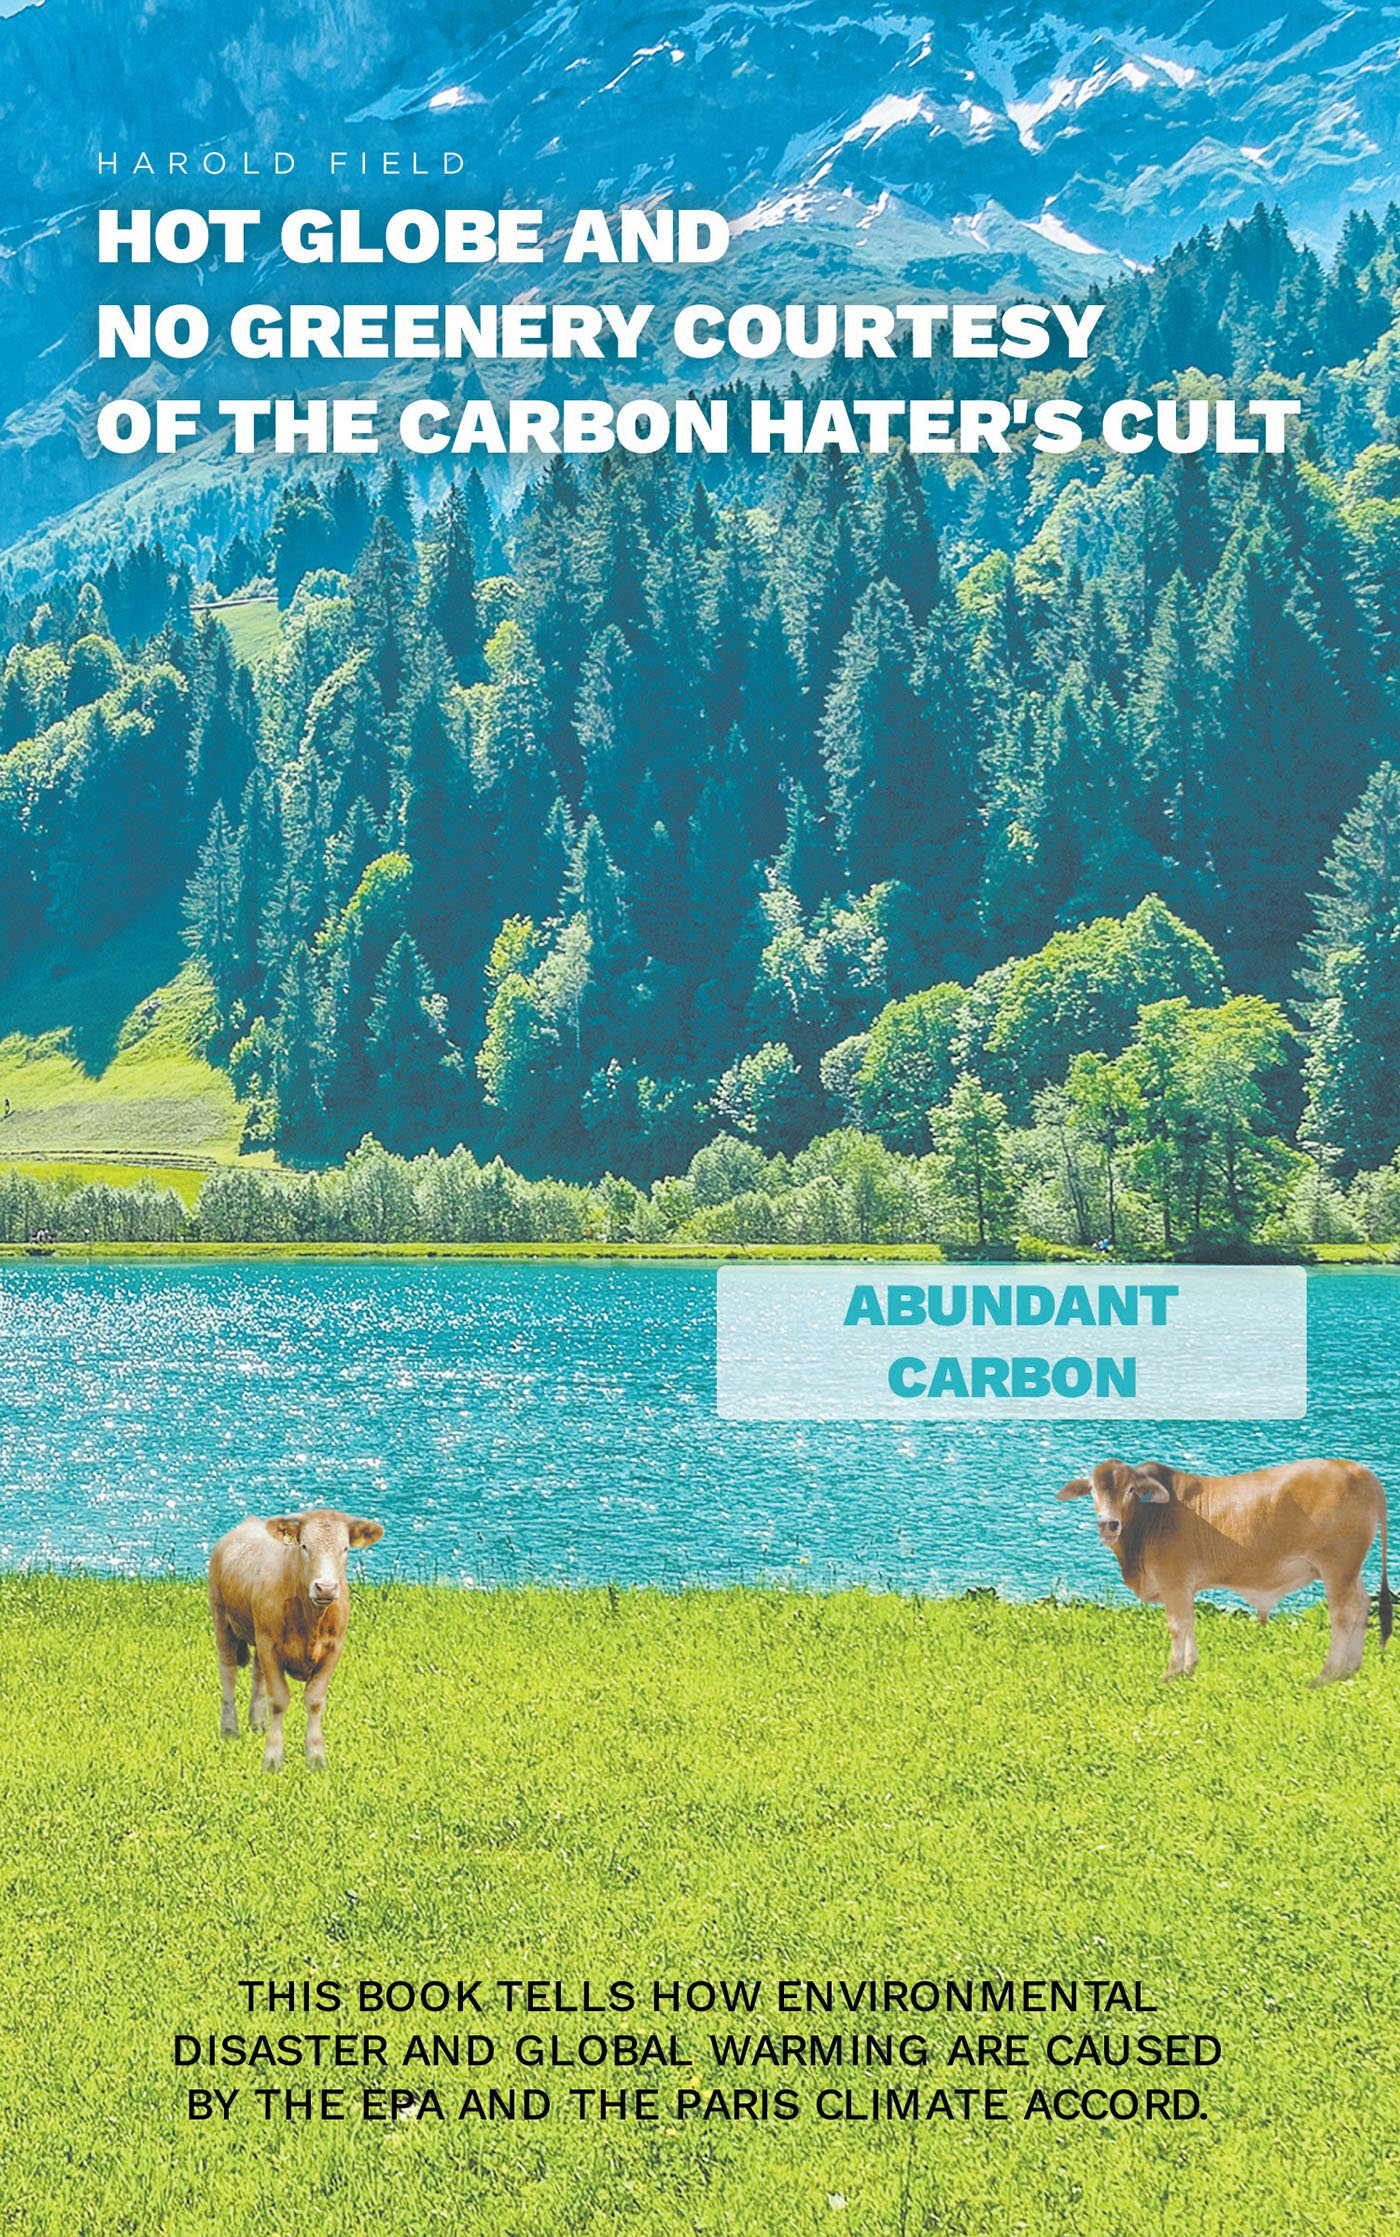 Harold Field's New Book 'Hot Globe and No Greenery Courtesy of Carbon Hater's Cult' is a Closer Perspective of the EPA's Role in the Environment's Adverse Condition